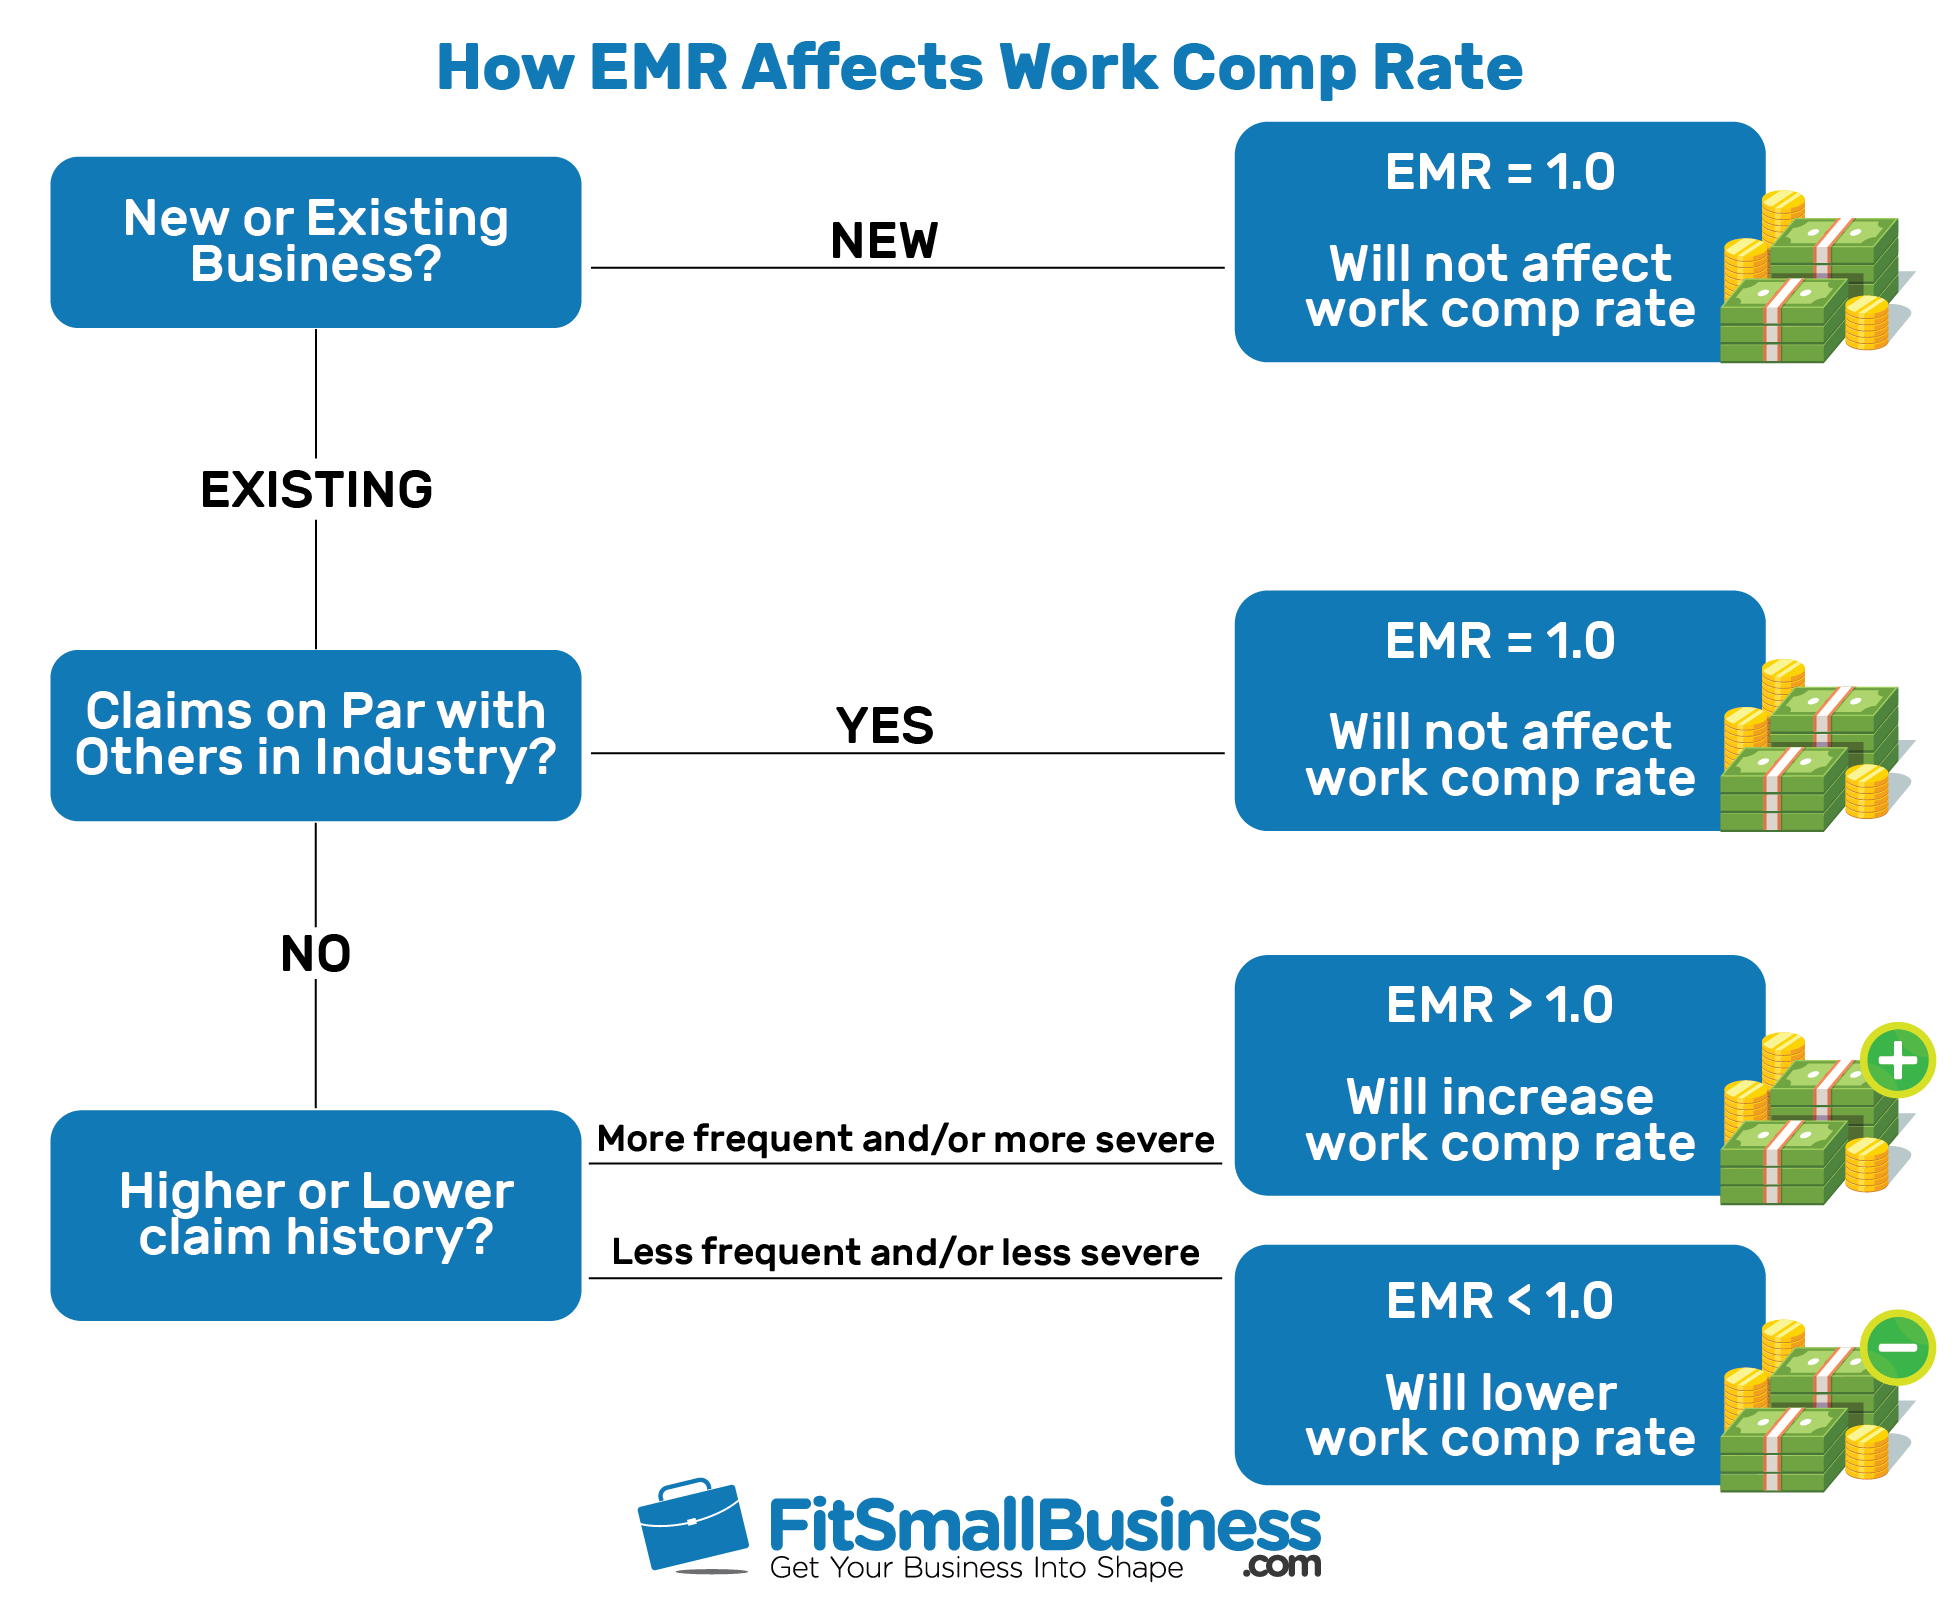 How EMR Affects Work Comp Rate